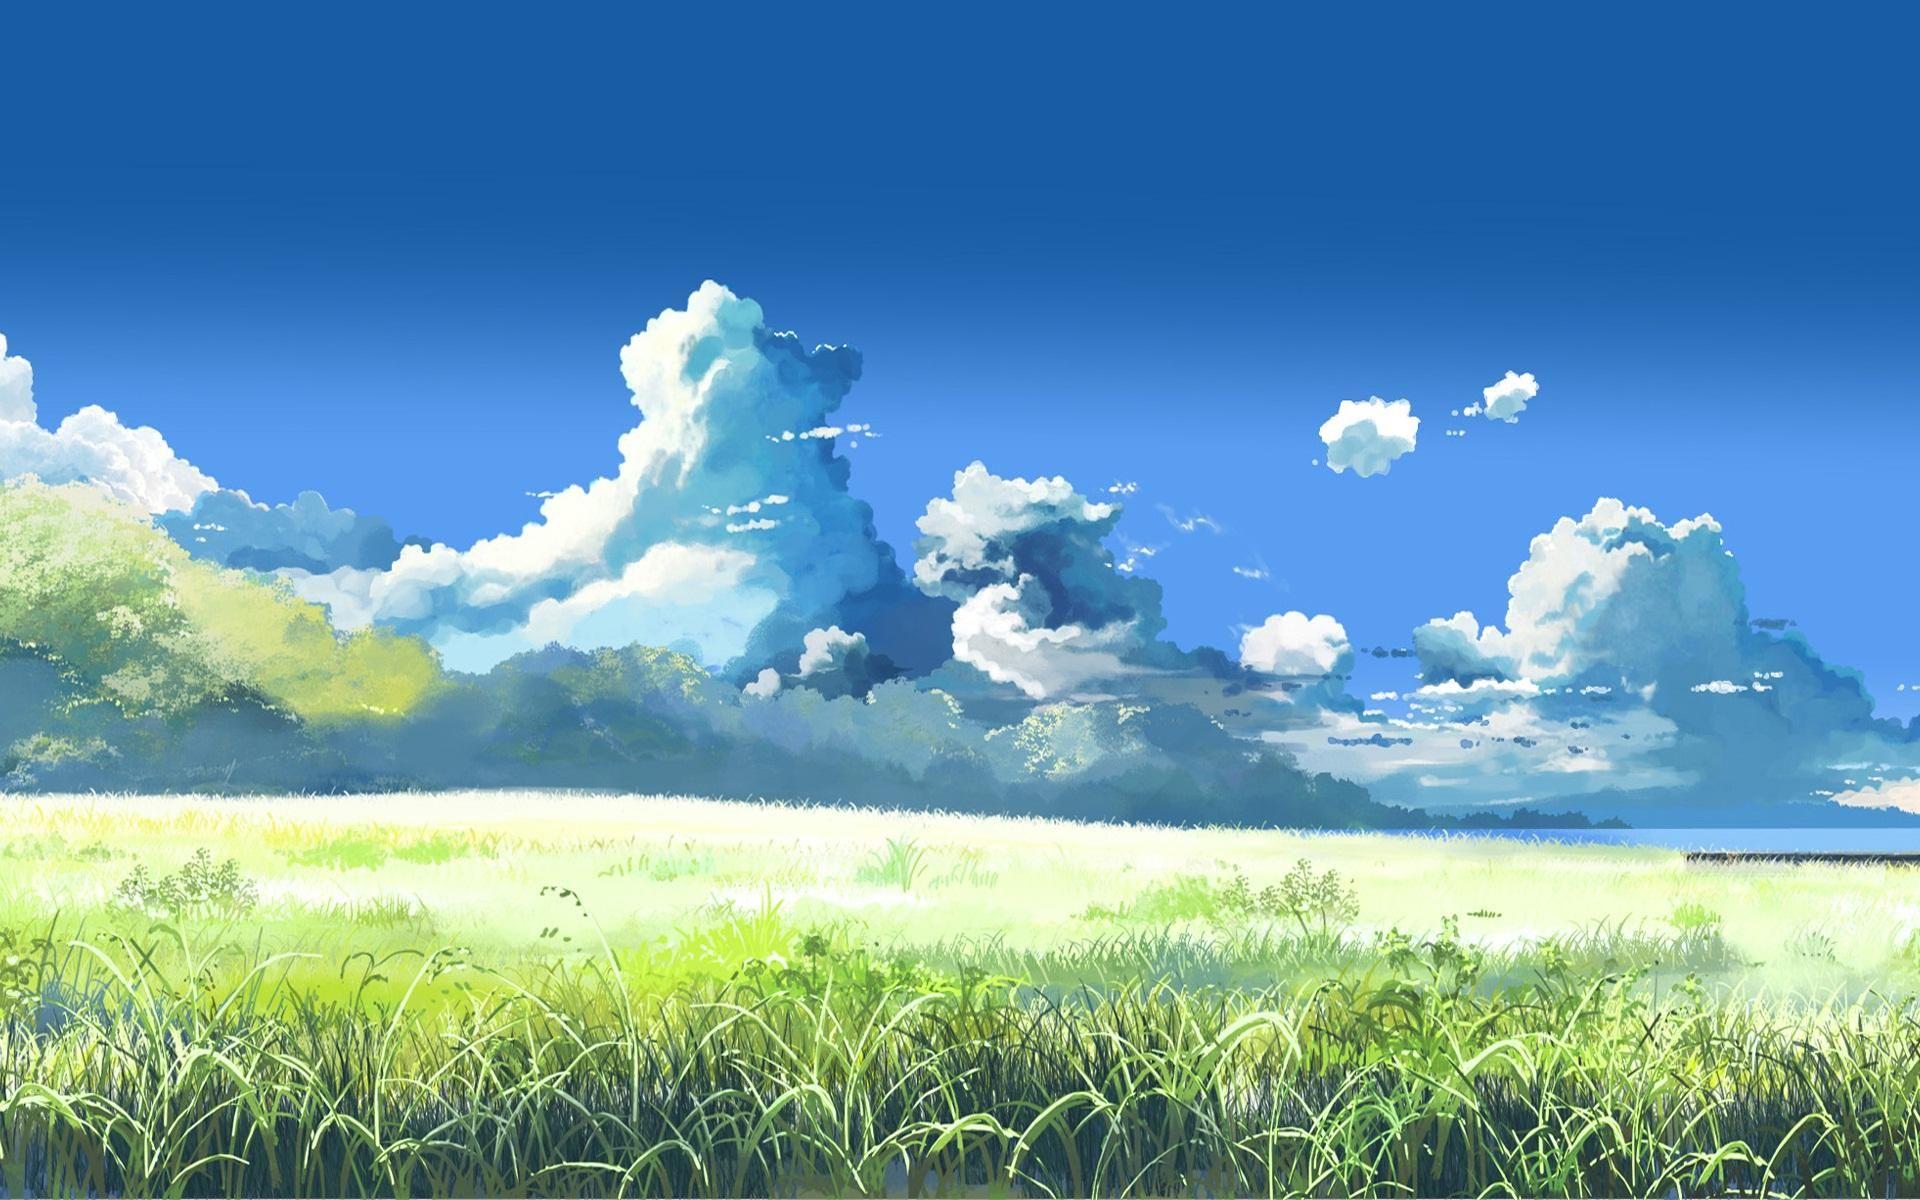 Anime Landscape 1920x1200 Anime Scenery Scenery Wallpaper Anime Scenery Wallpaper